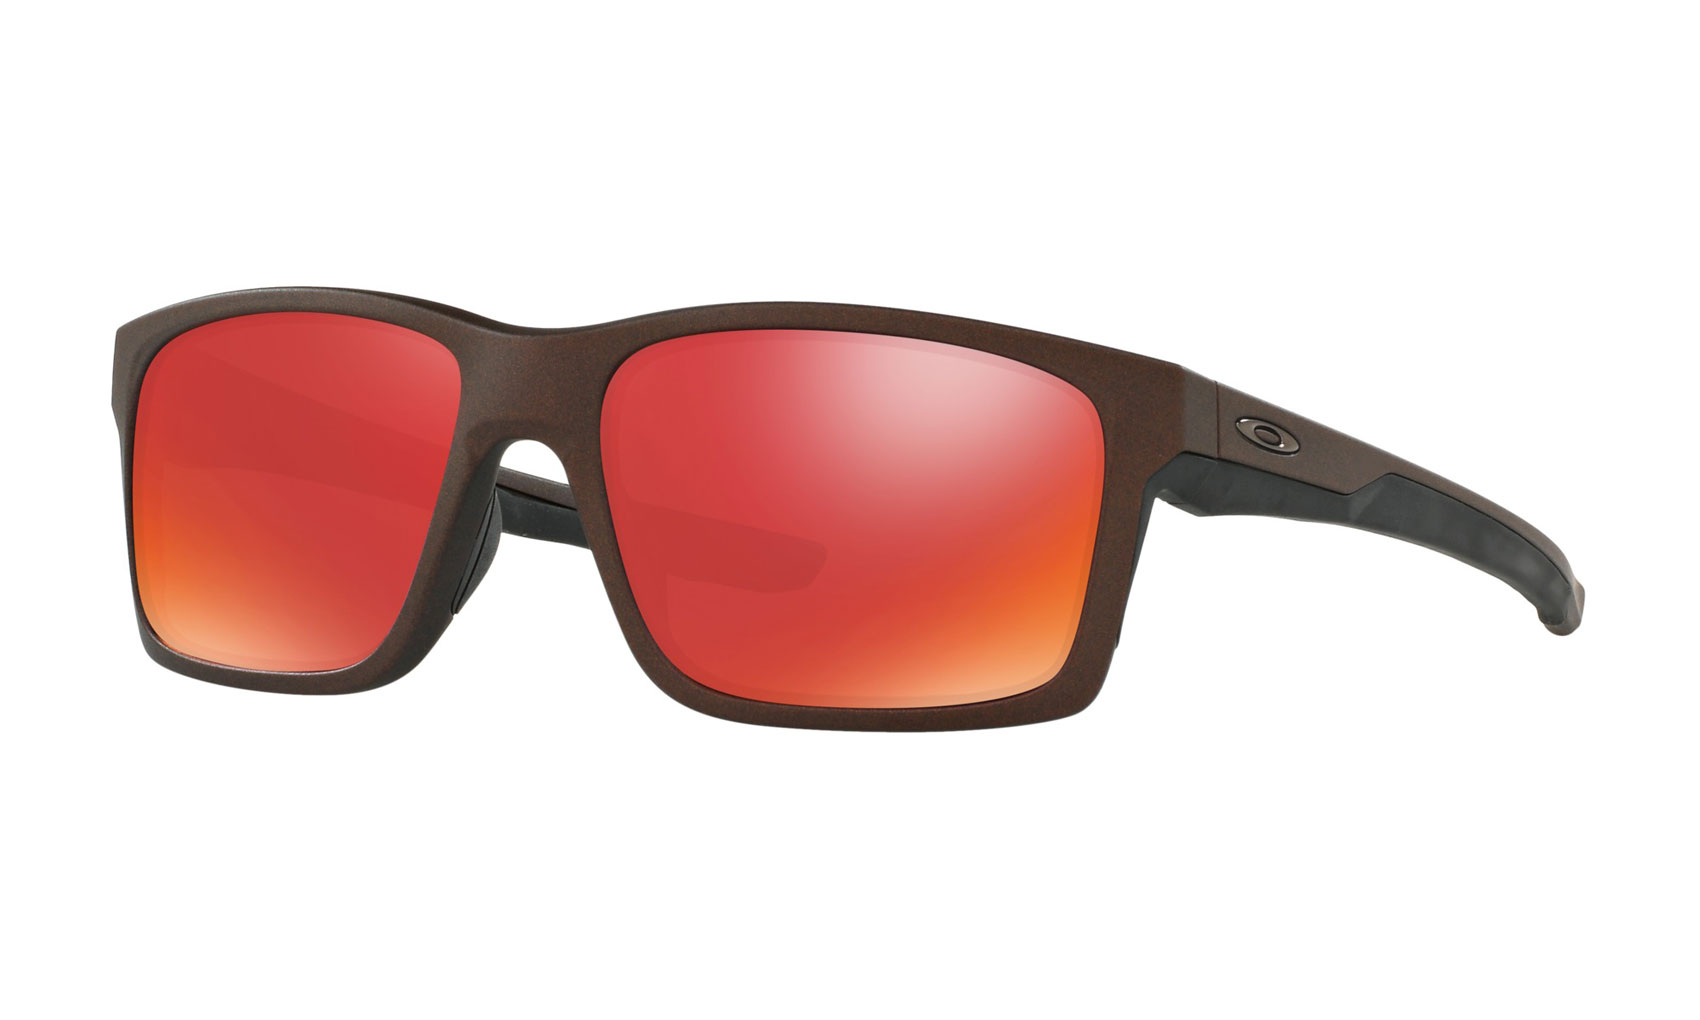 478a2bcd1b Oakley Mainlink Sunglasses Corten Torch Iridium